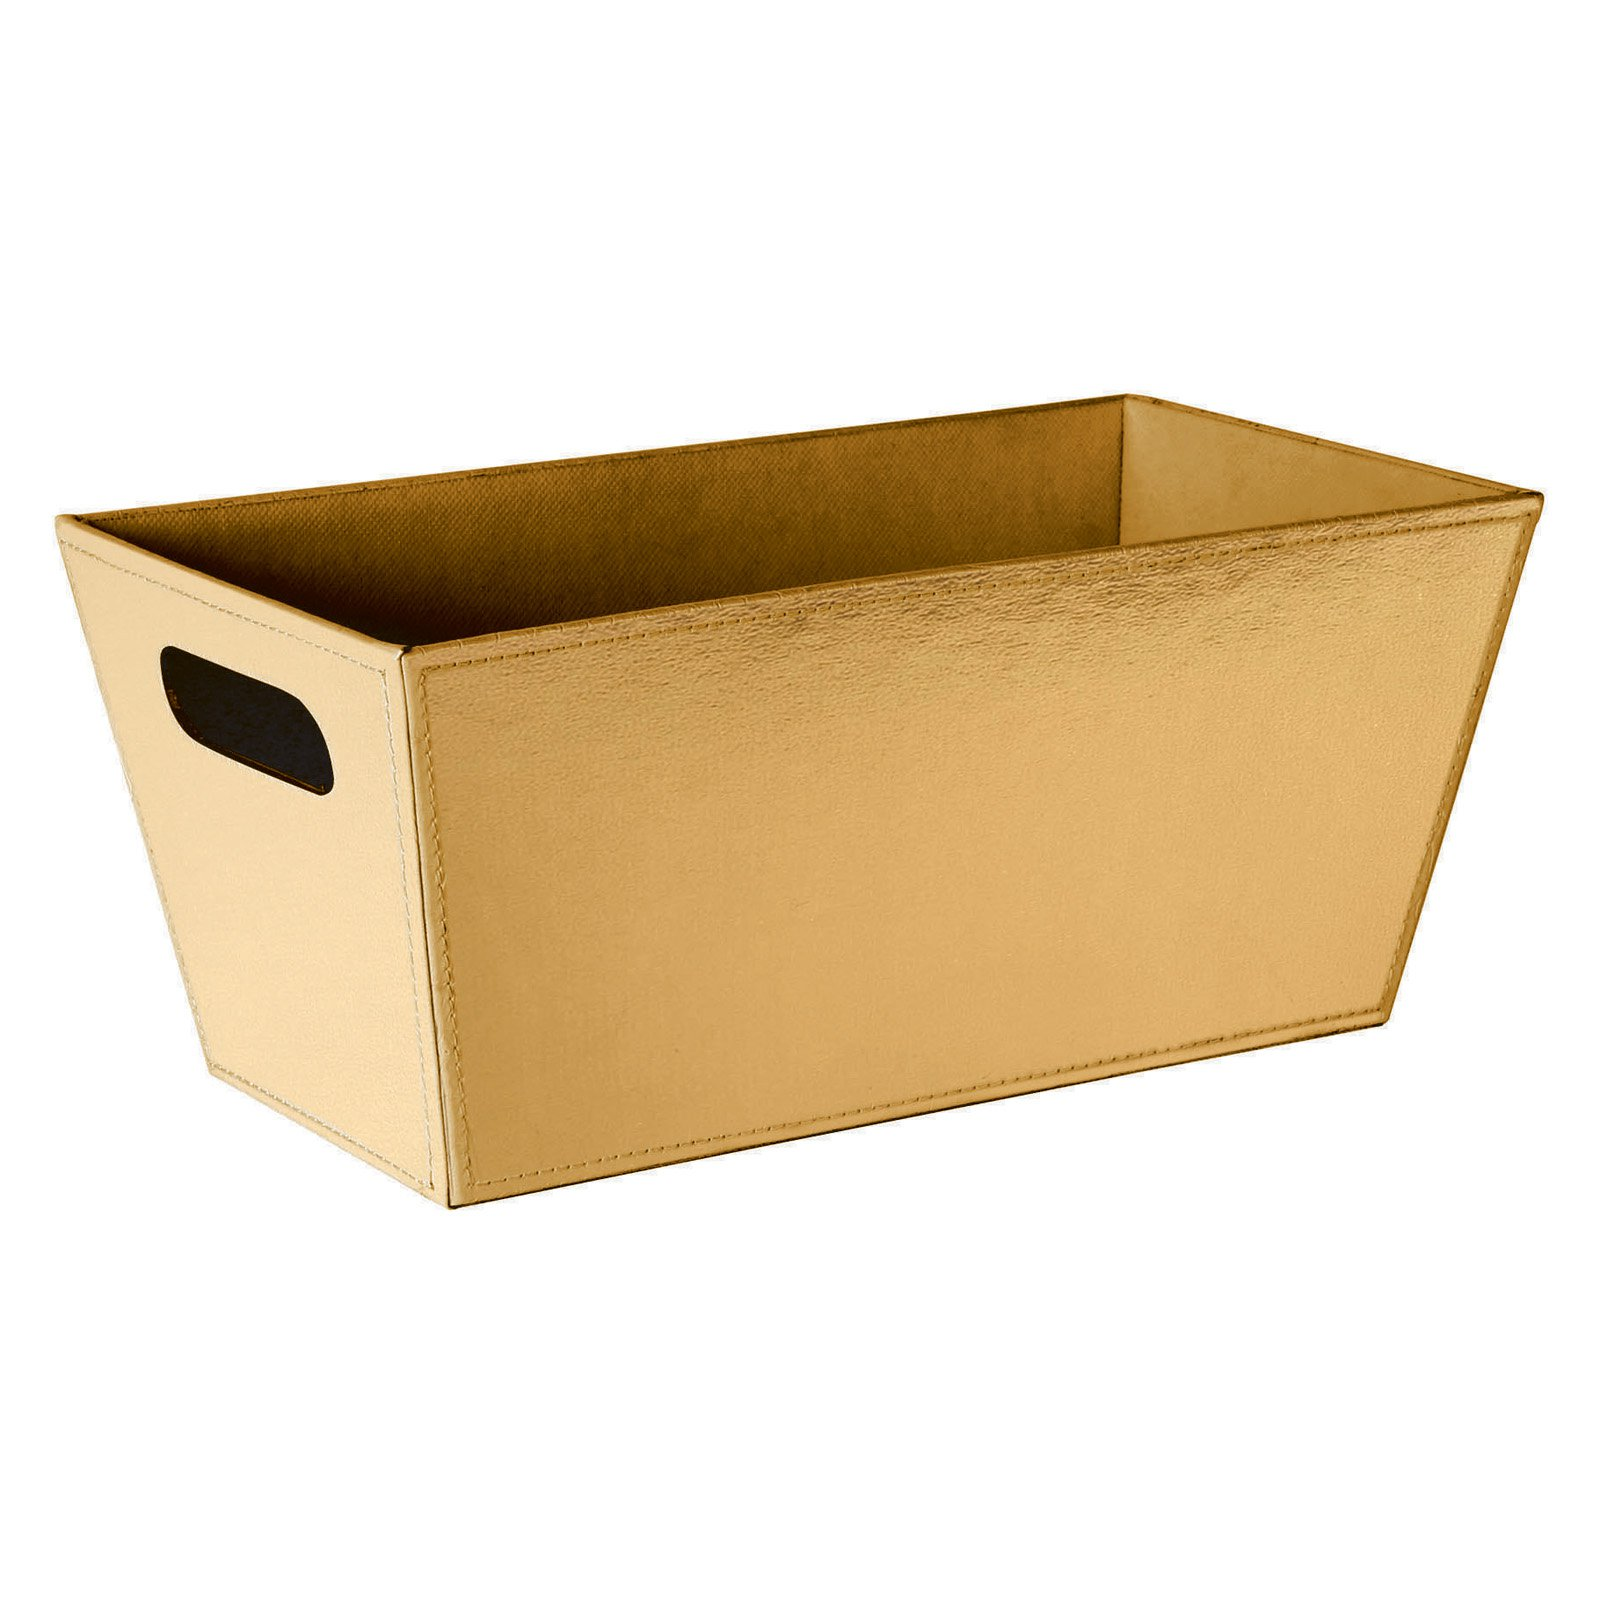 Gold Faux Leather Storage Bin